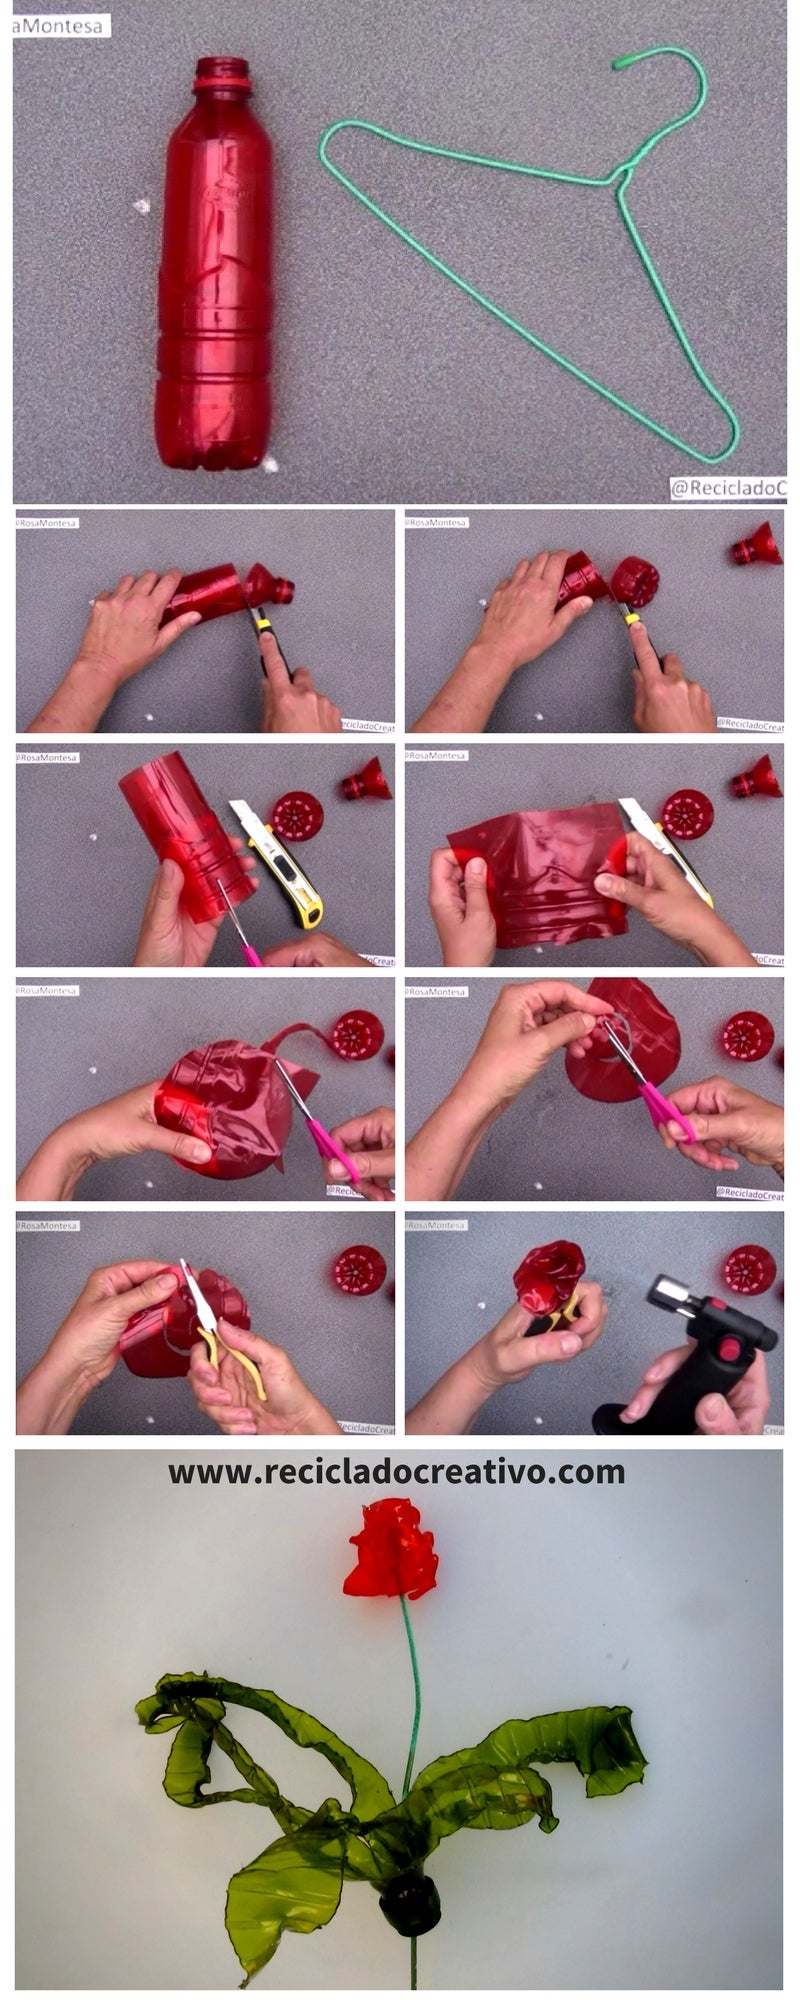 Step by Step. Before and After. How to Make a Flower - Red Rose